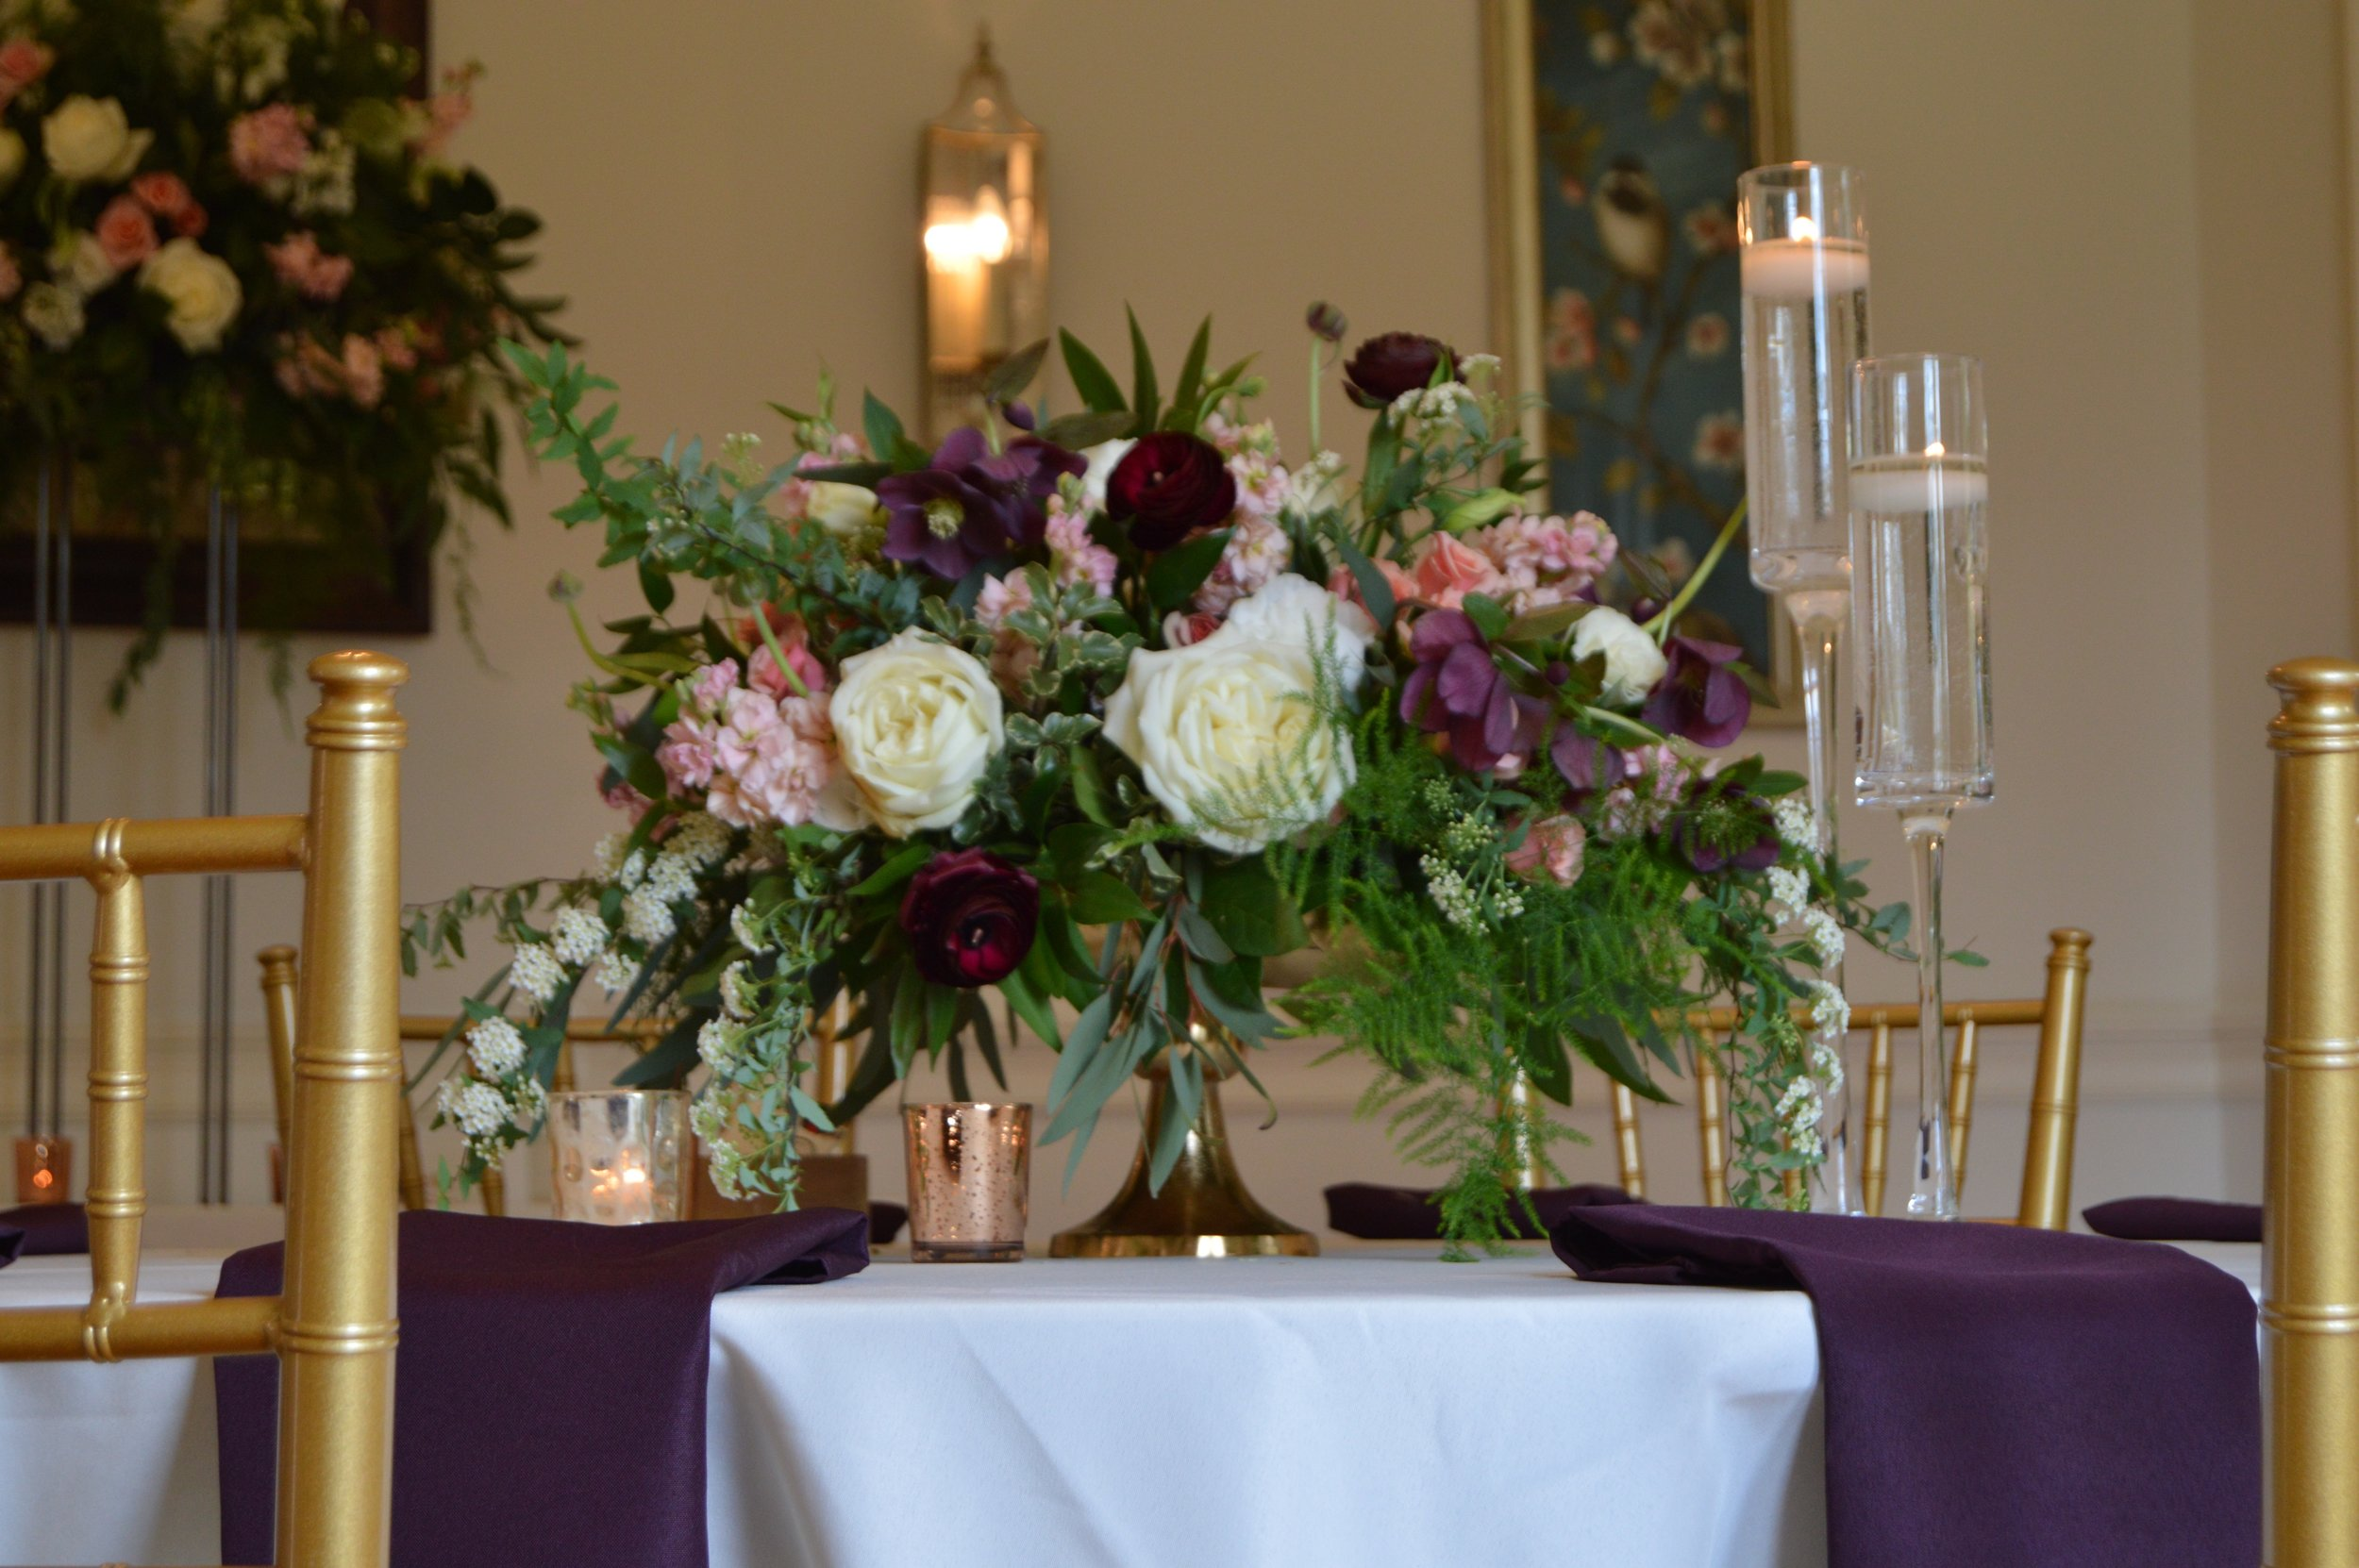 Elegance at Rust Manor House, Leesburg, Virginia, with Chiavari chairs, gold pedestal vase arrangement from J. Morris Flowers, copper and glass votives.